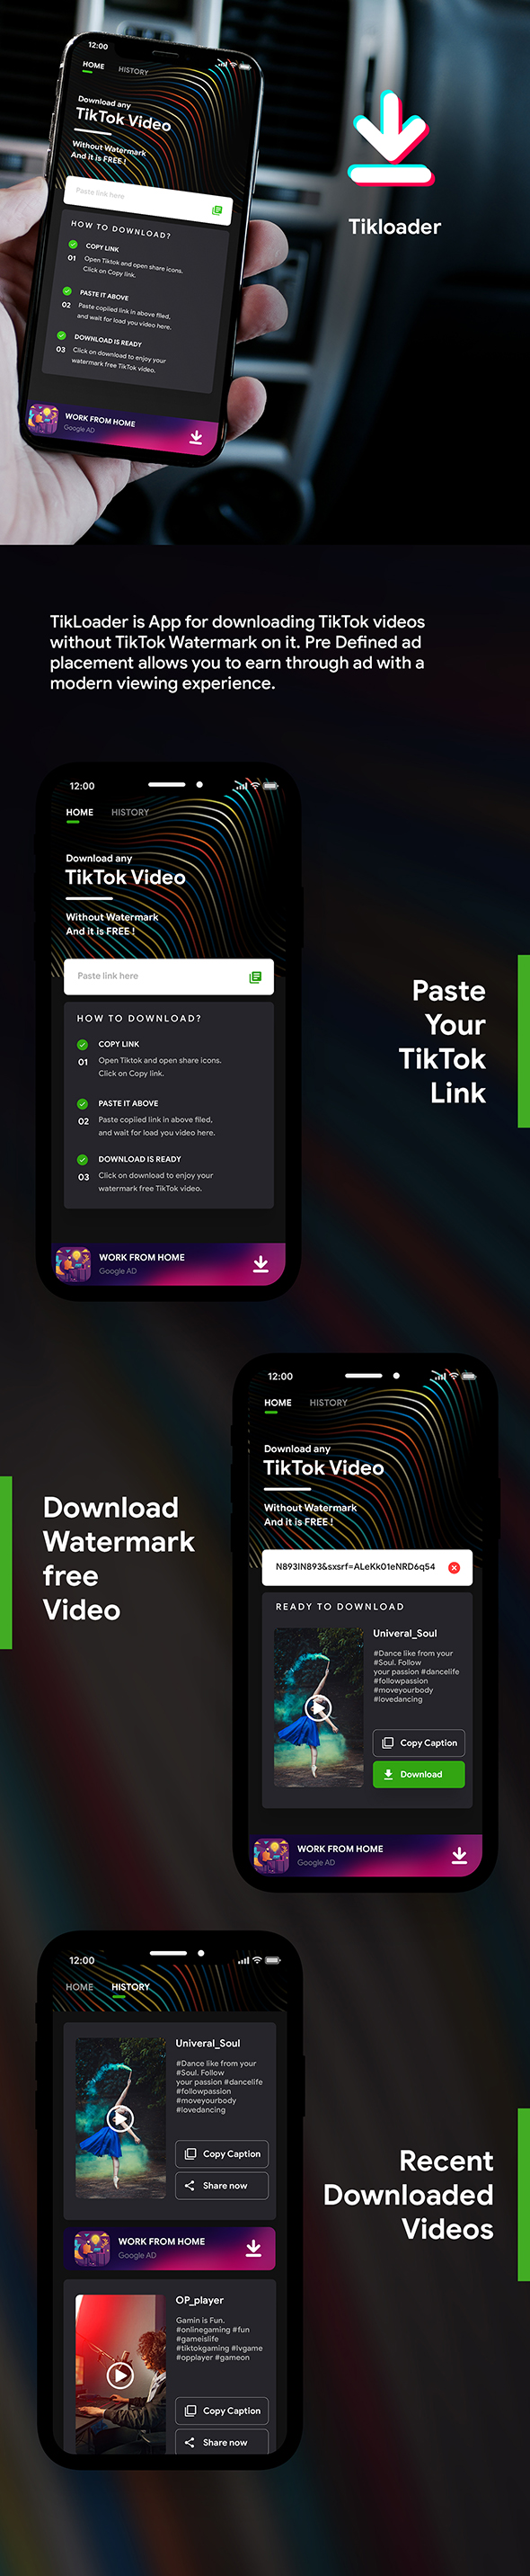 TikTok Video Downloader Android App without Watermark with admob | Tikloader | Complete App - 2